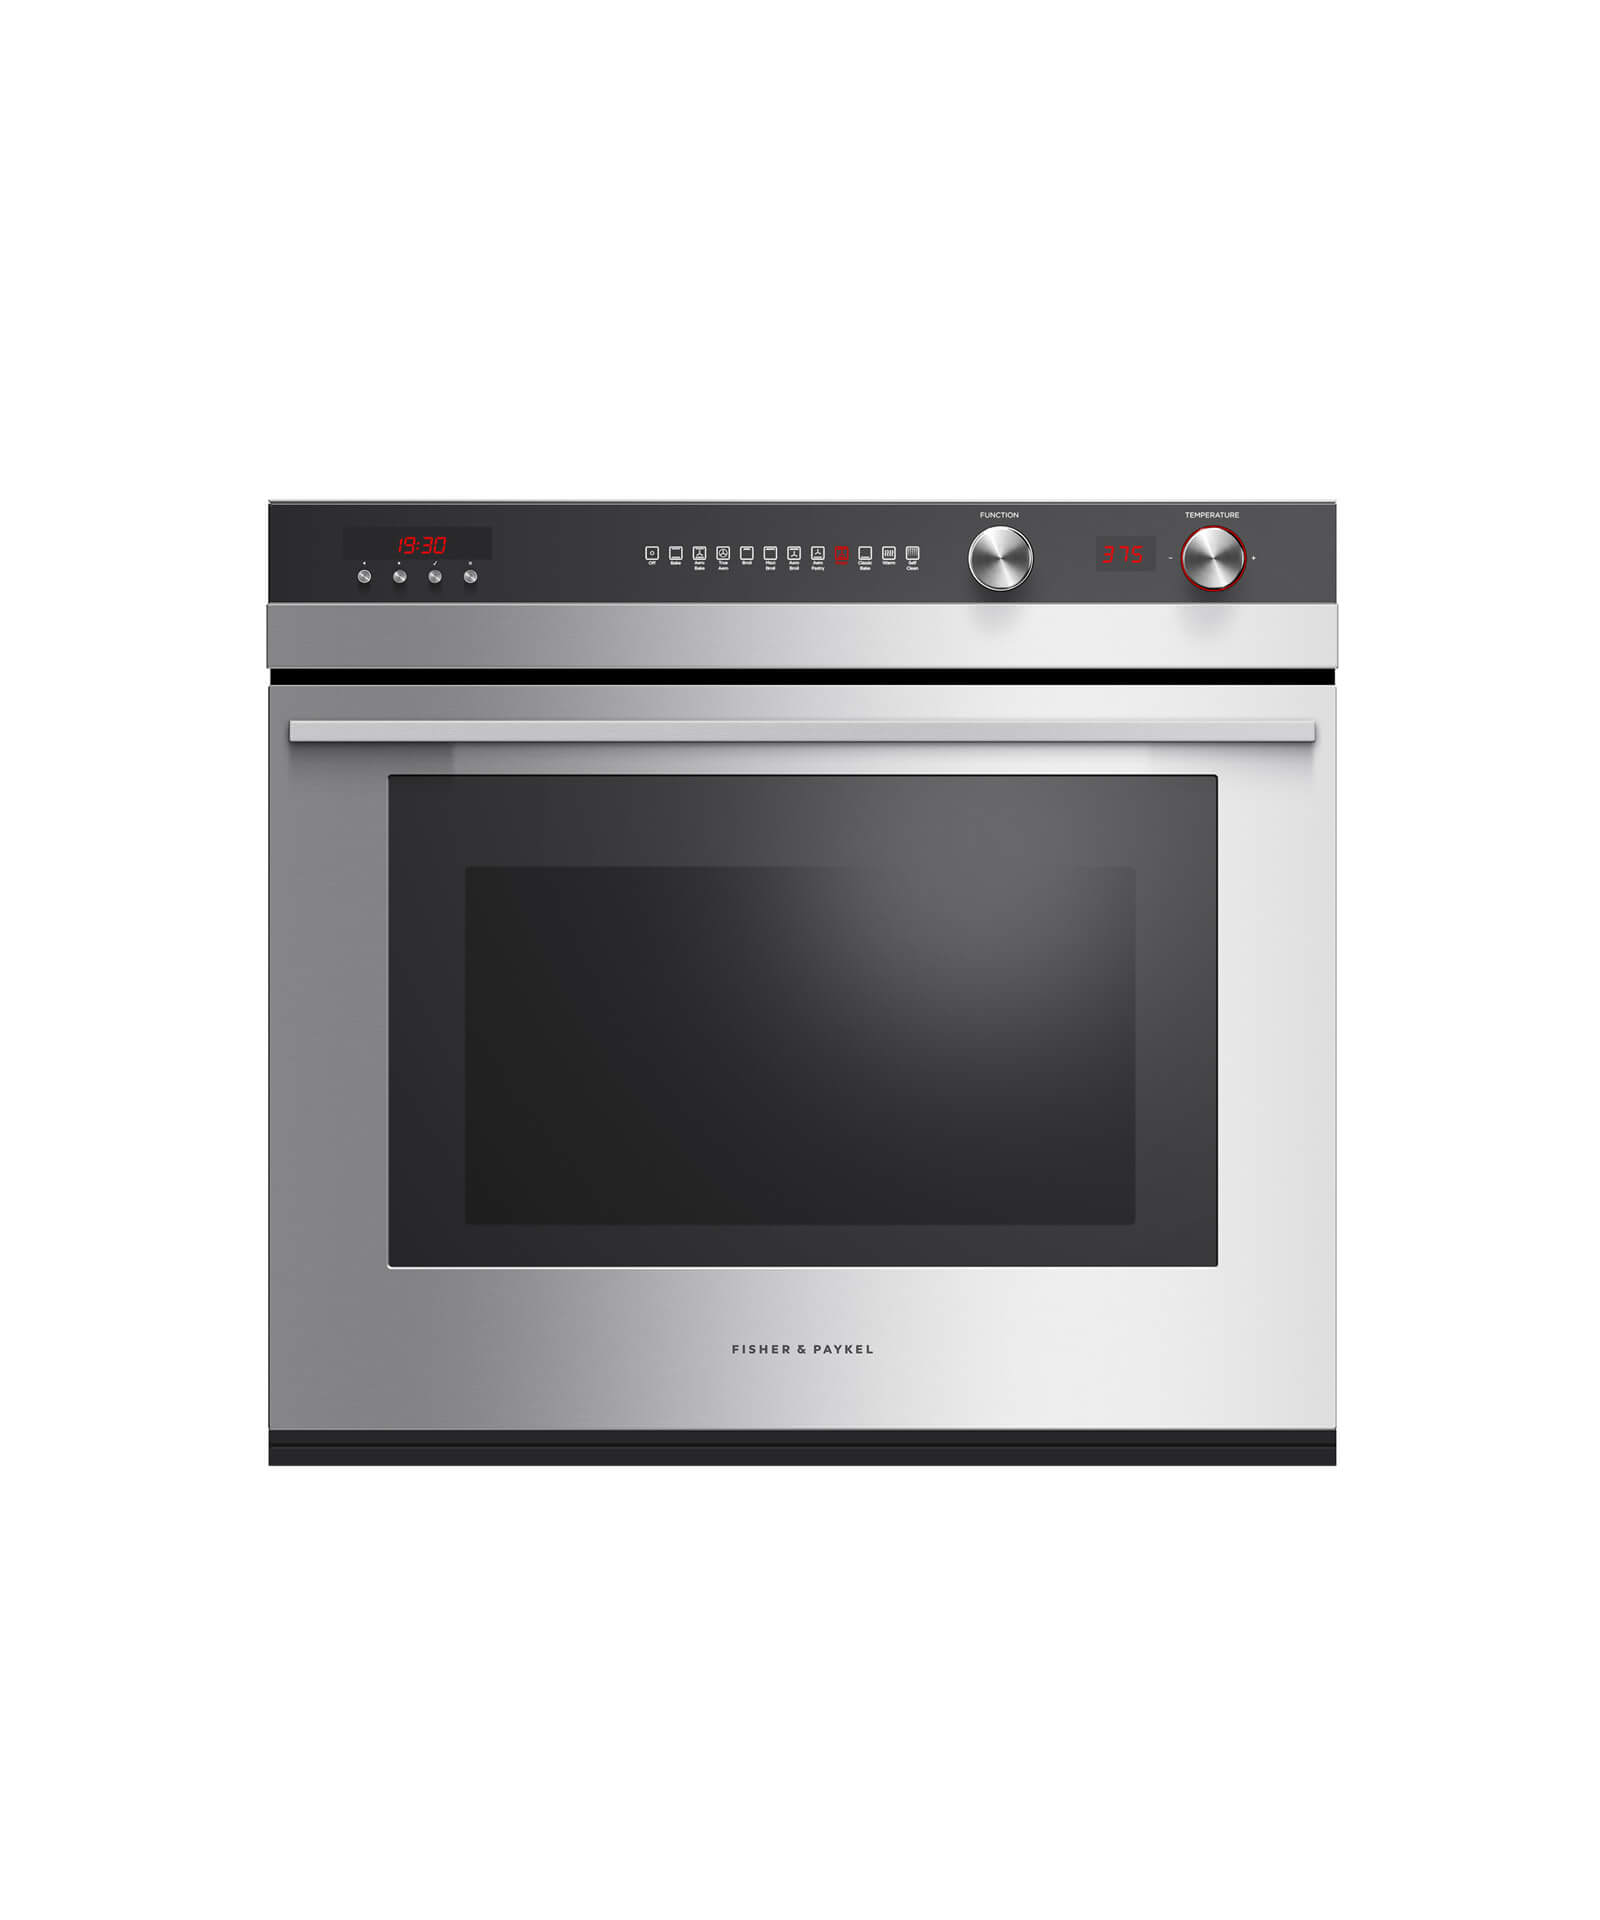 "Fisher and Paykel Built-in Oven, 30"" 4.1 cu ft, 11 Function"